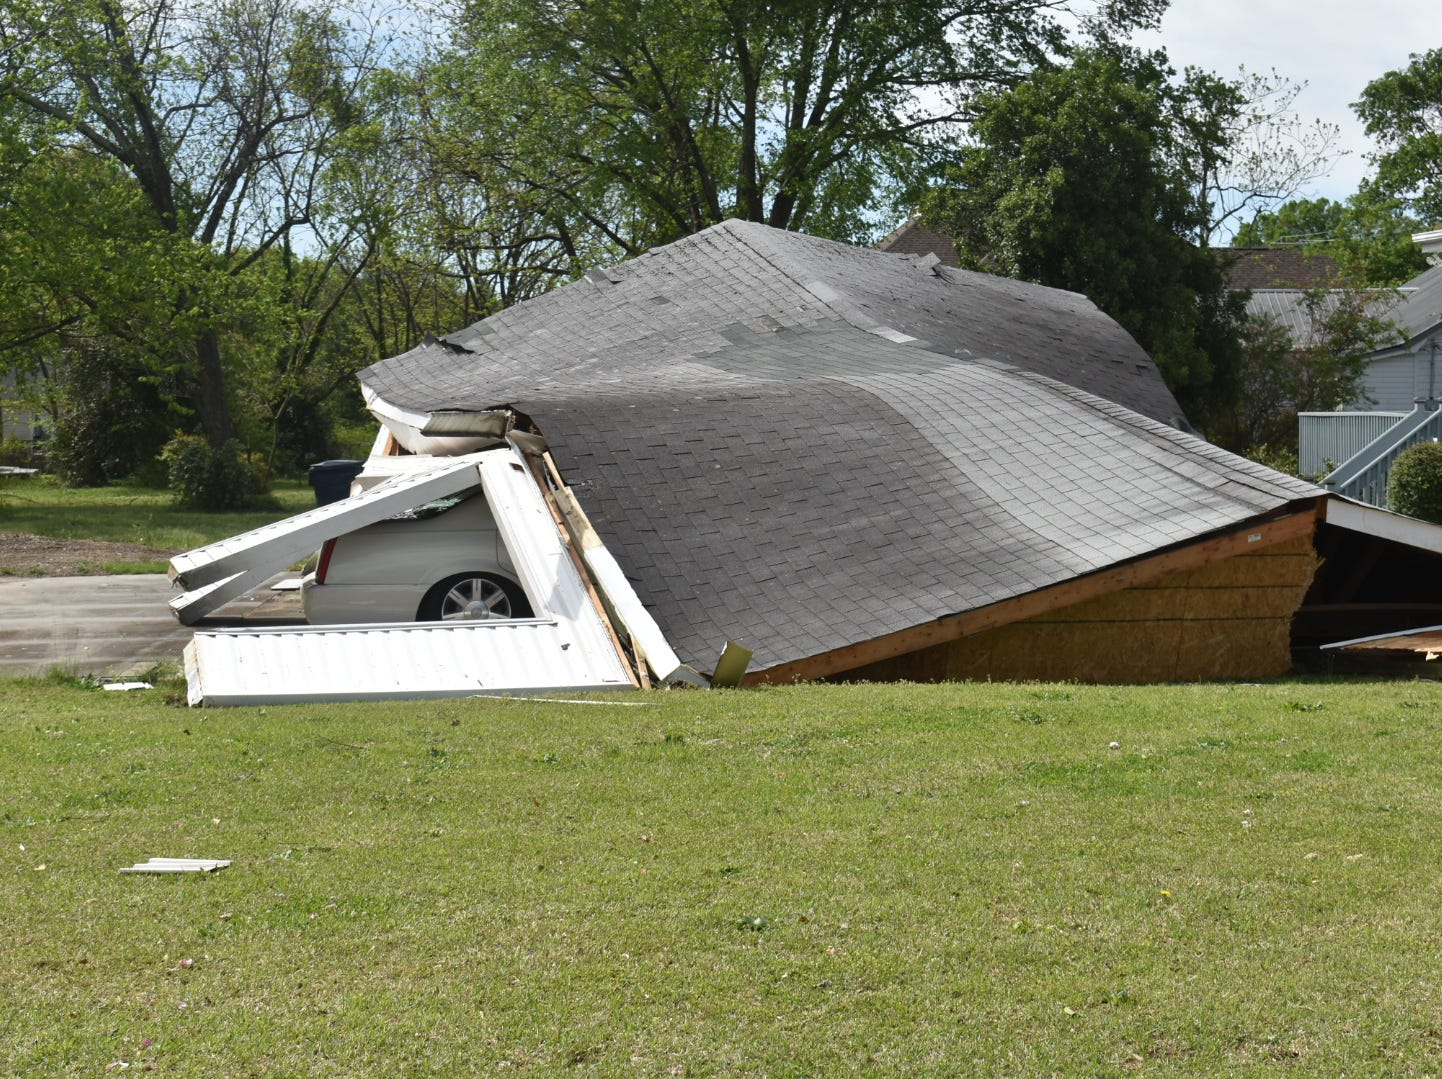 Some of the damage caused by a weekend storm in Simpsonville.